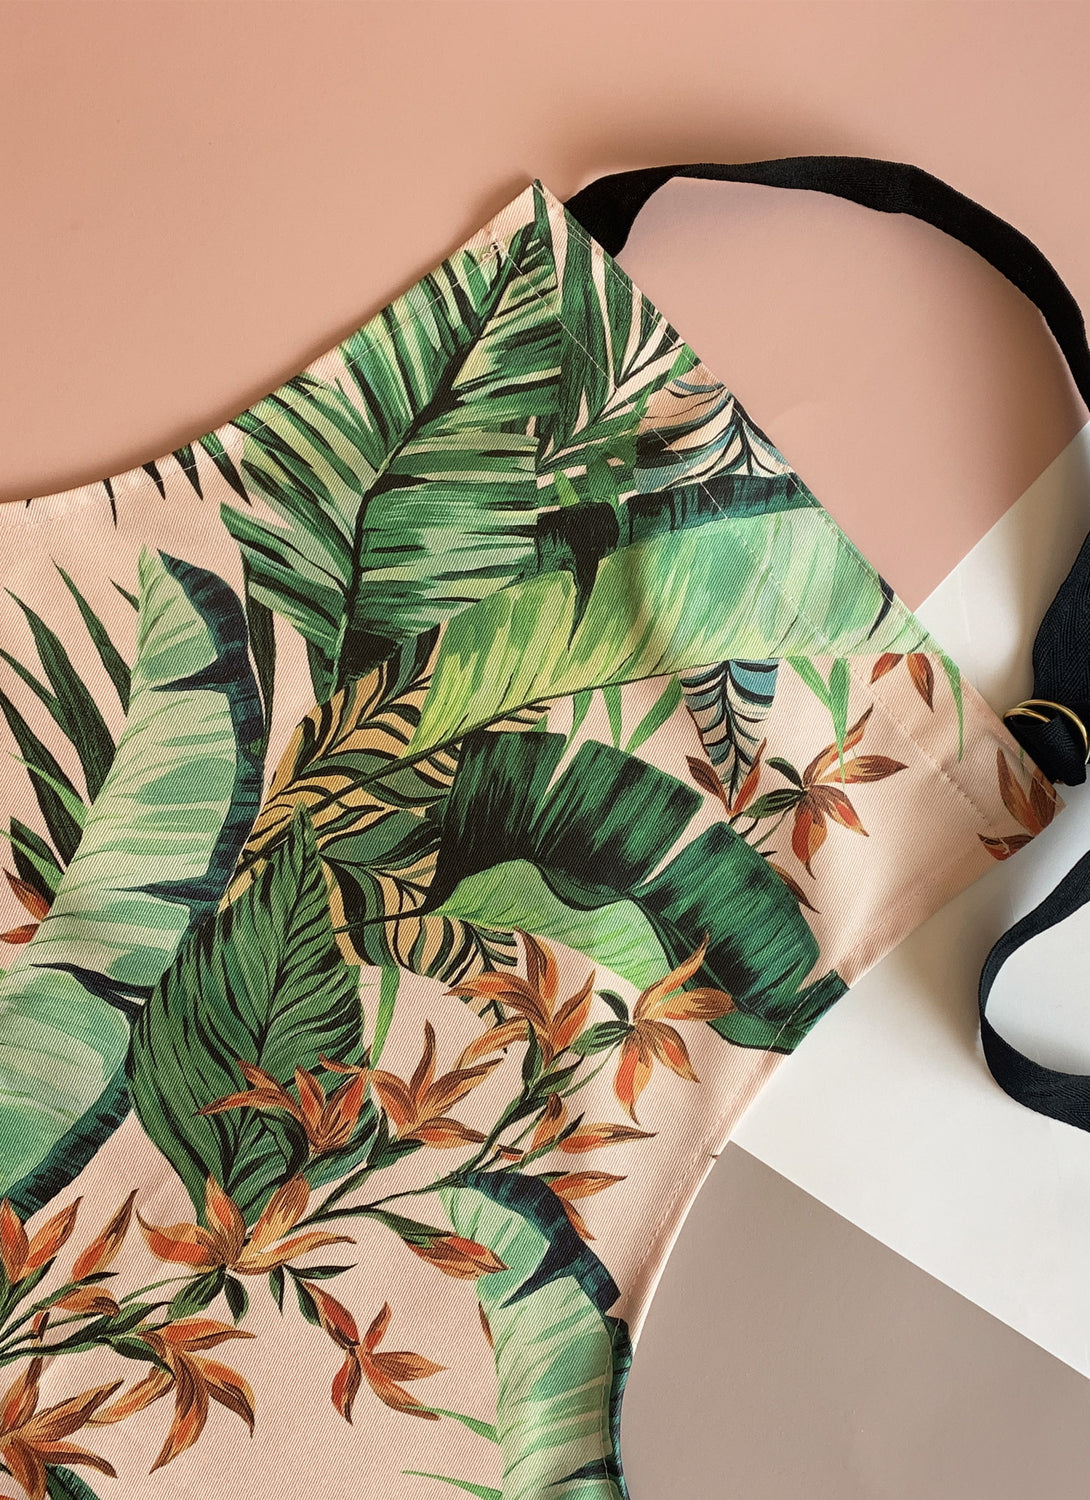 Dartmouth Tropical Blush Apron